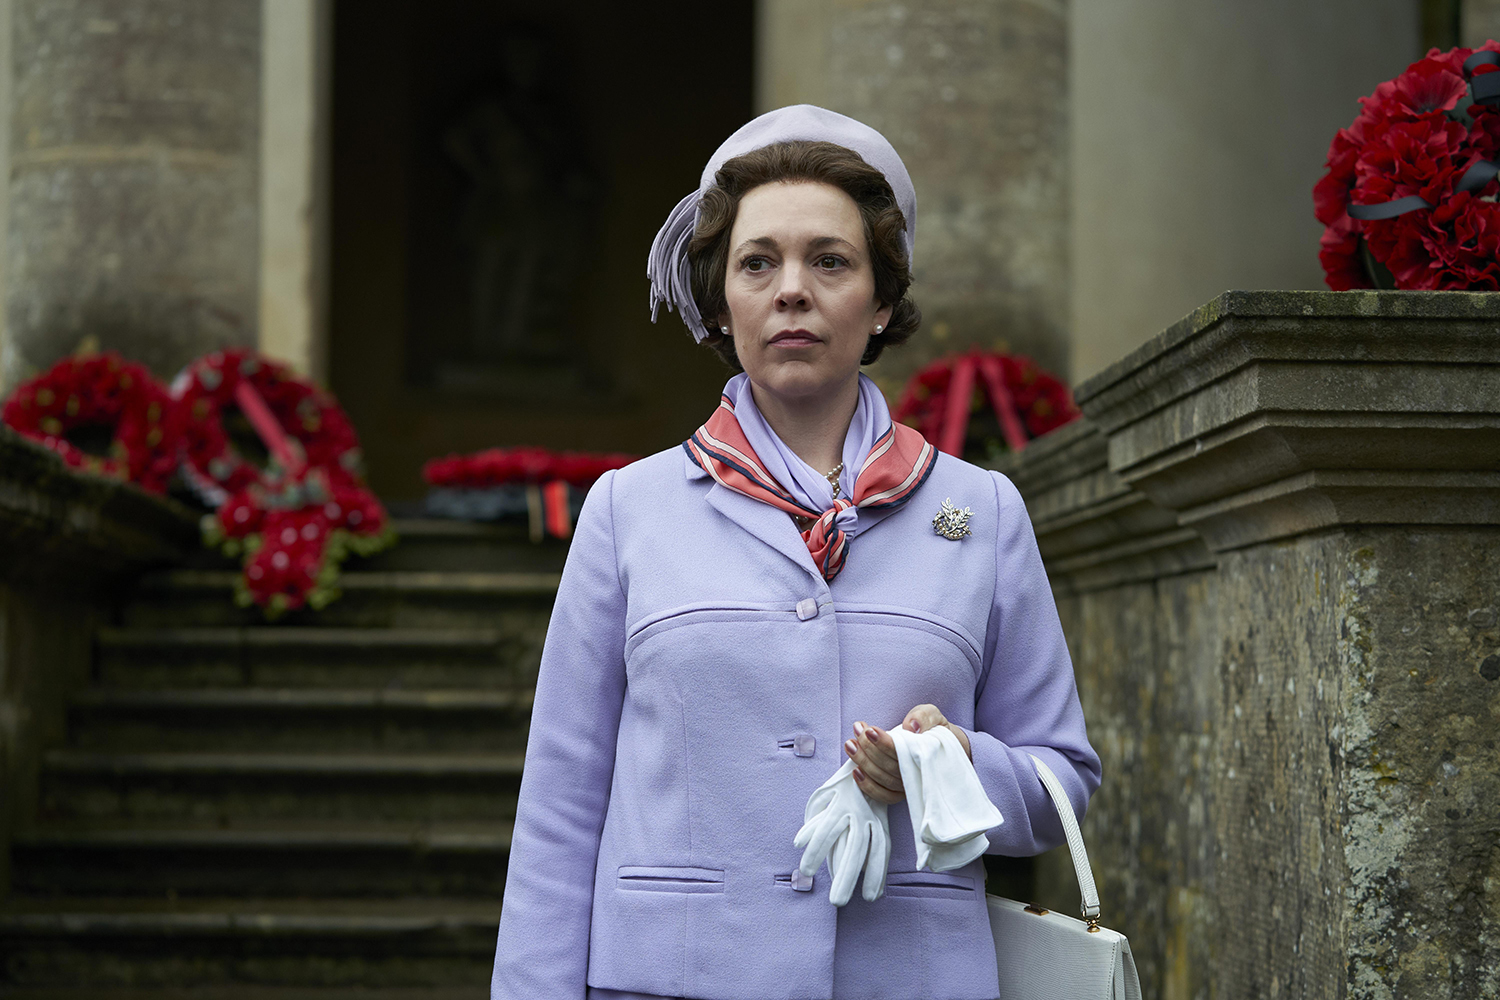 Olivia Colman takes over as Queen Elizabeth II for the third season of The Crown. [Des Willie/Netflix]